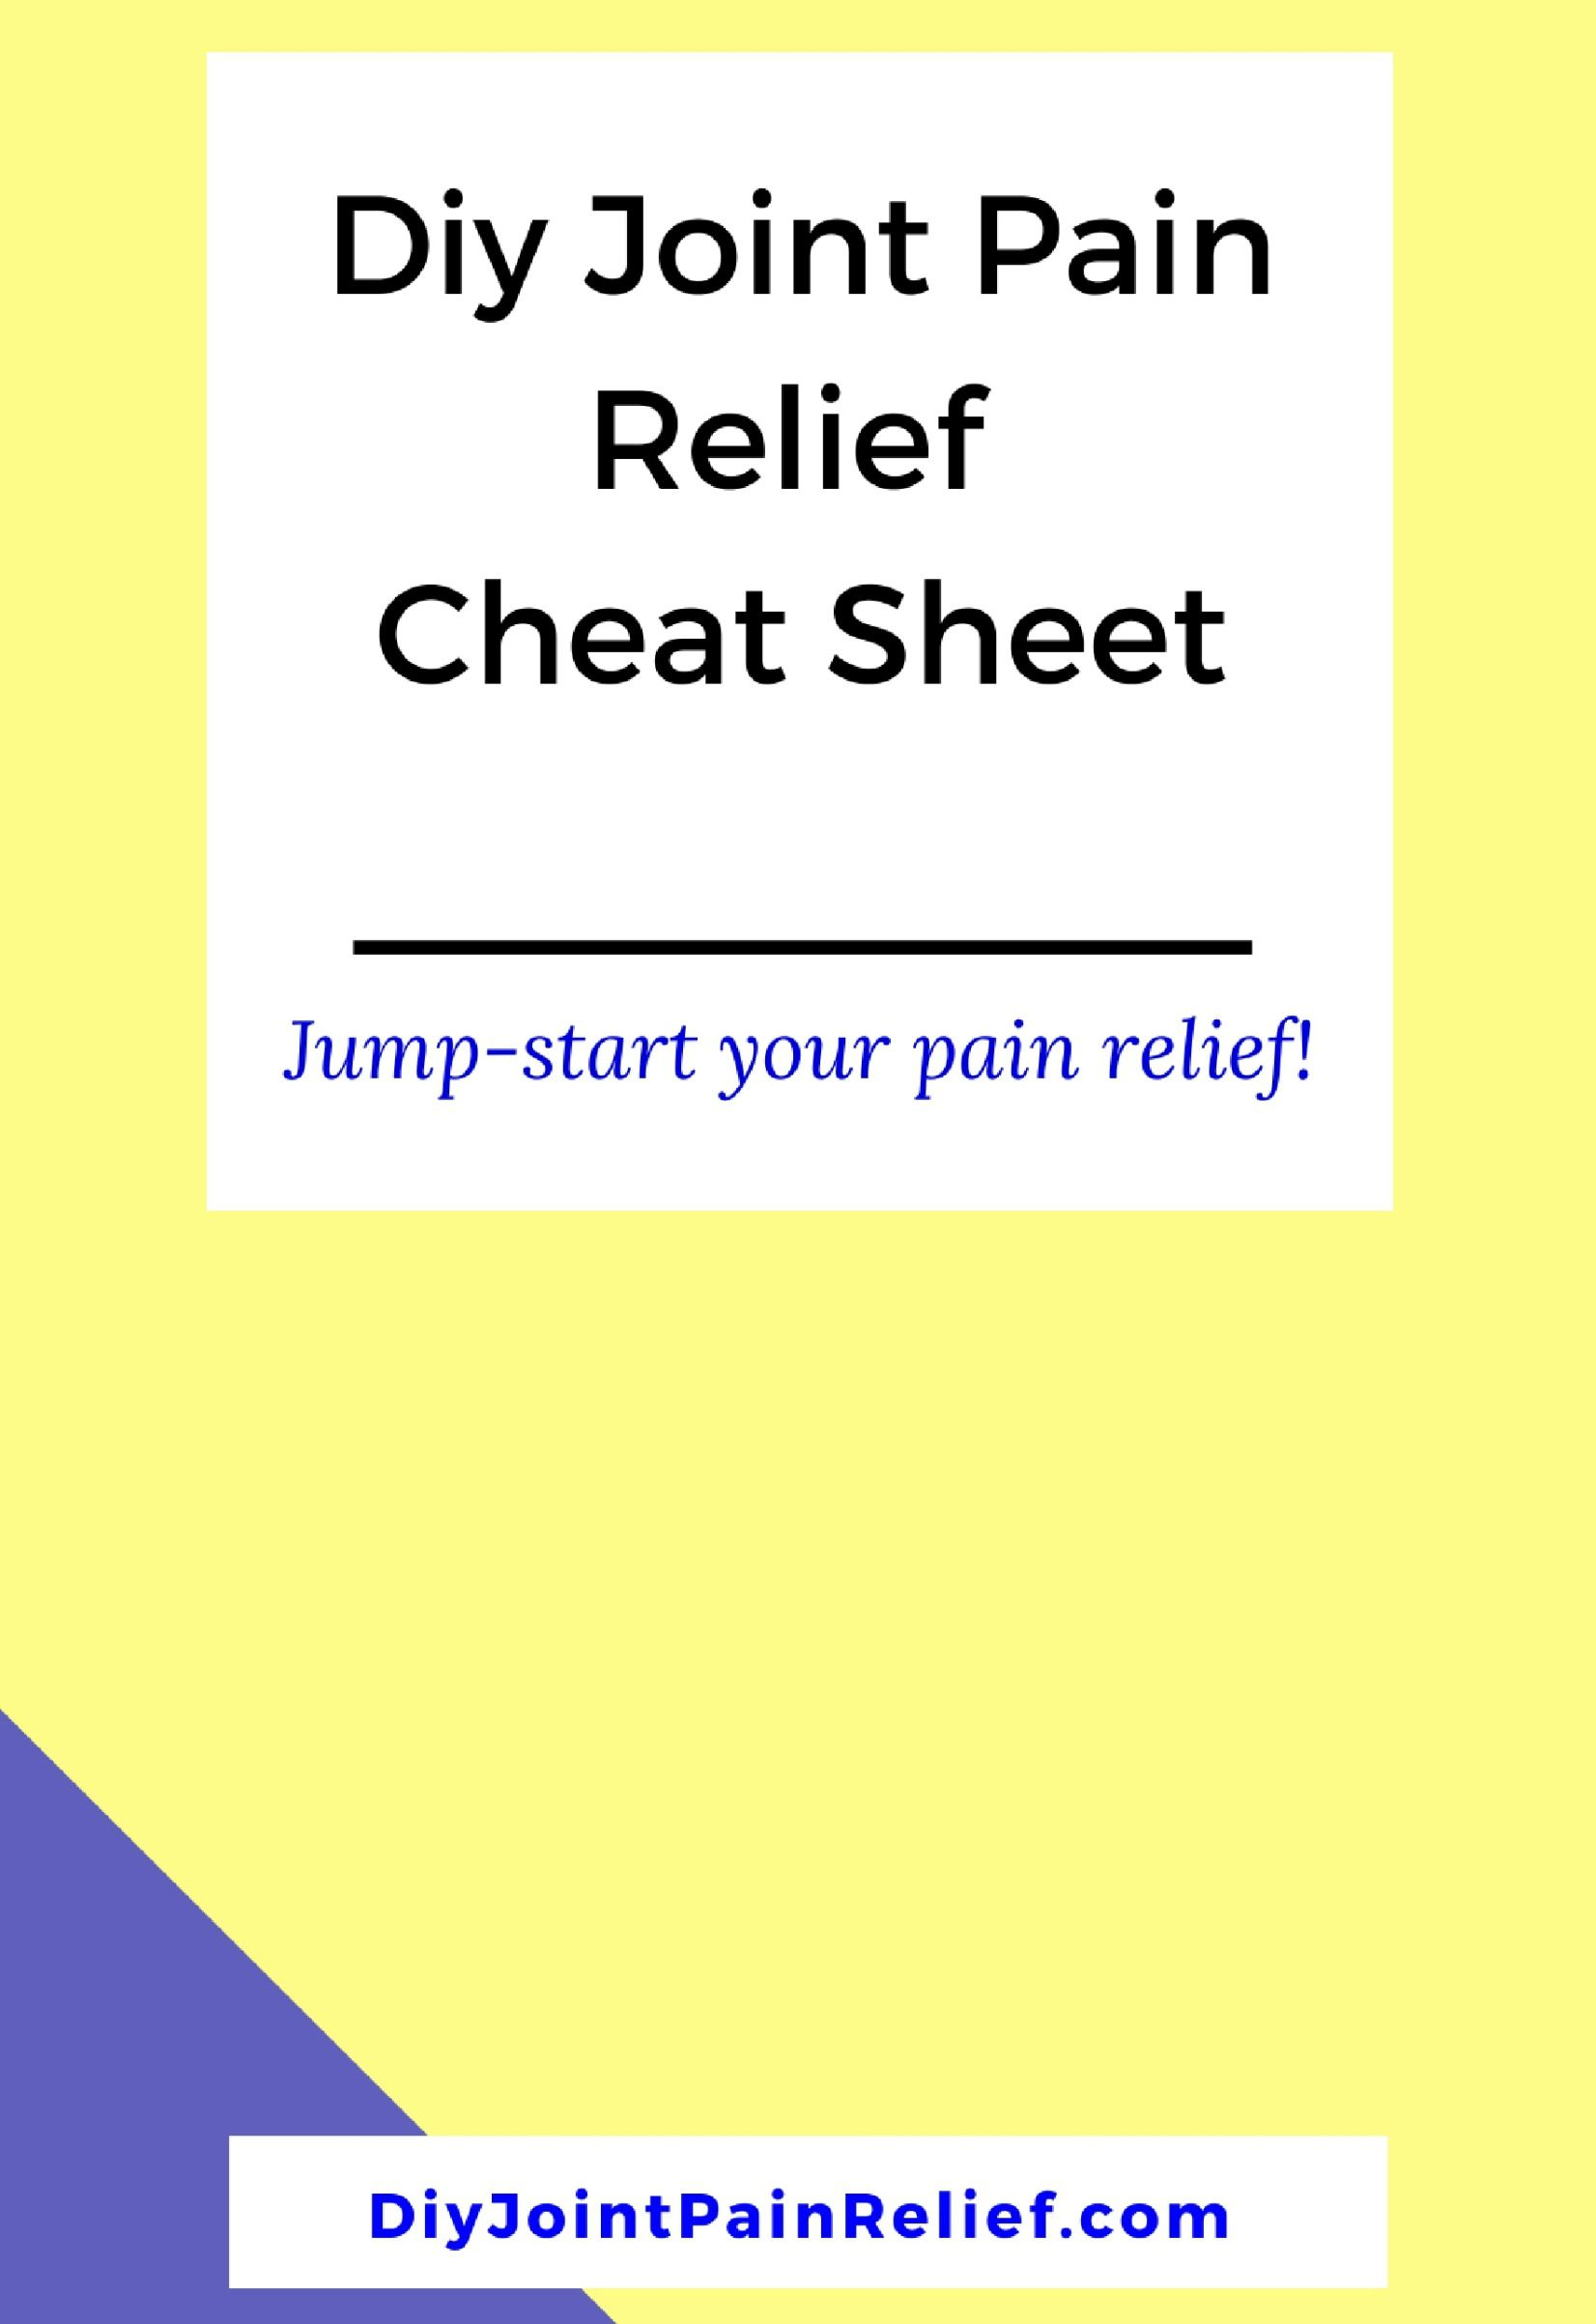 Free pain relief cheat sheet at do it yourself joint pain relief free pain relief cheat sheet at do it yourself joint pain relief solutioingenieria Choice Image